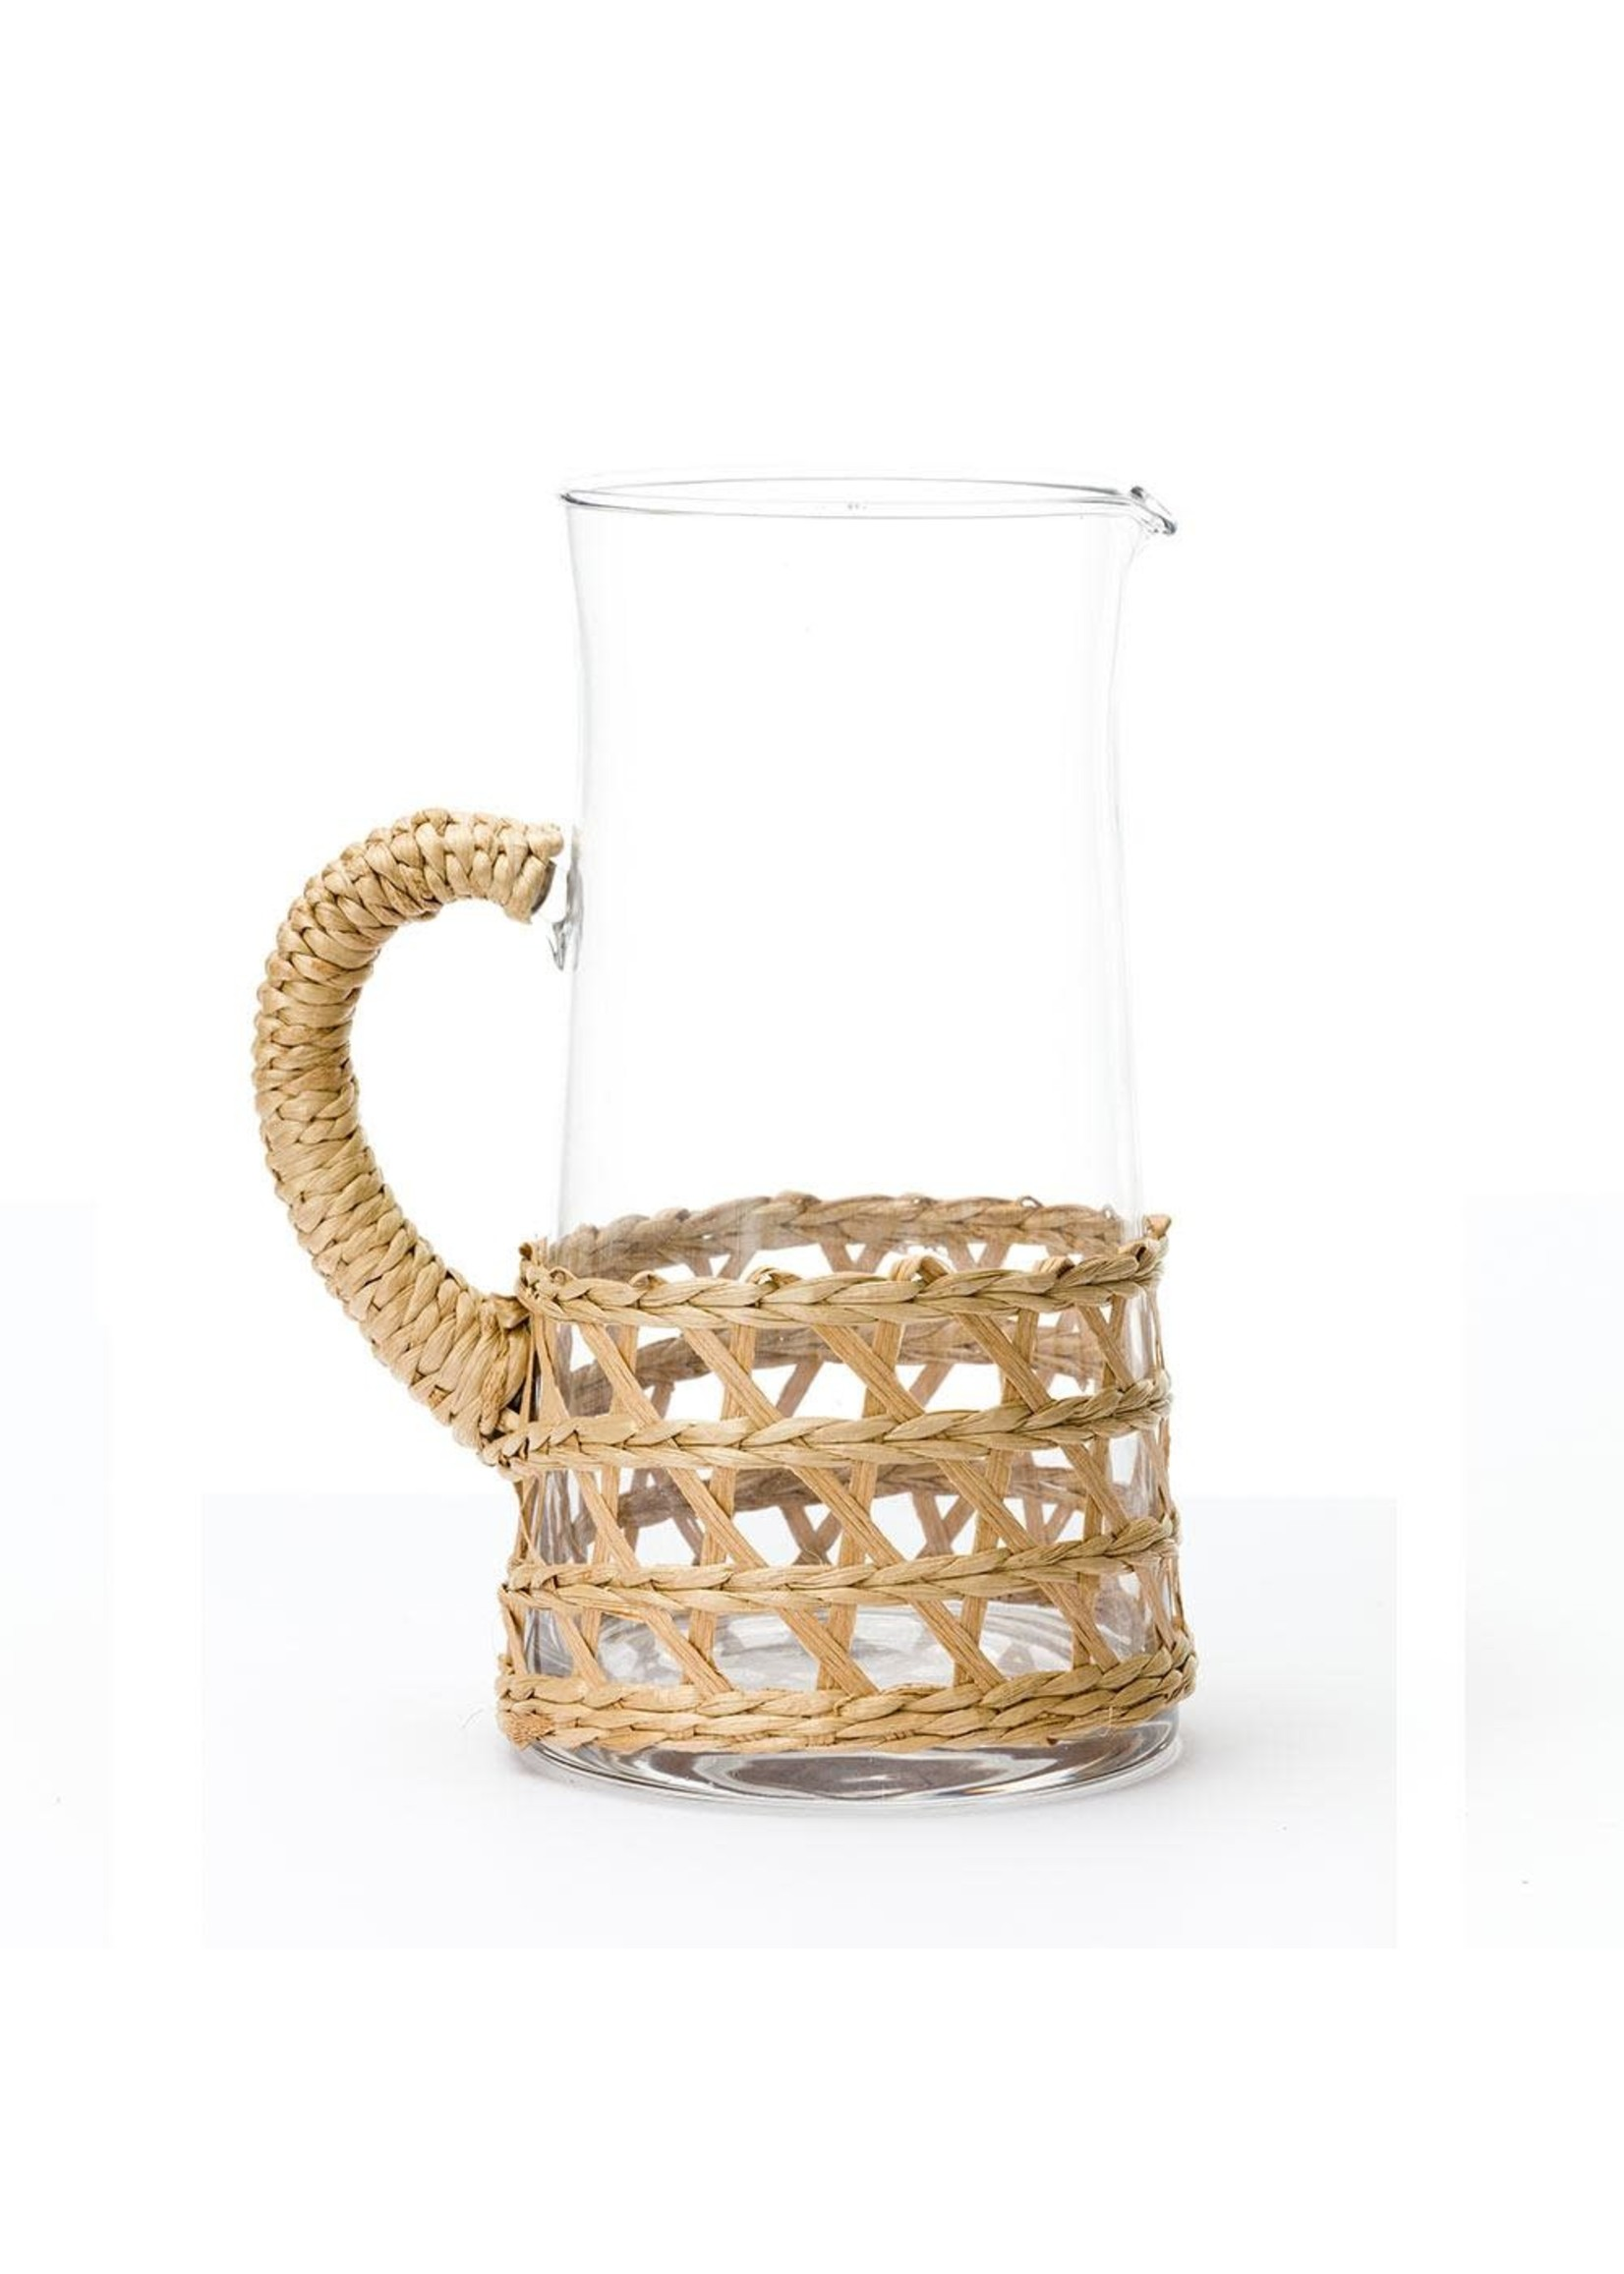 Amanda Lindroth Island Wrapped Pitcher - Natural